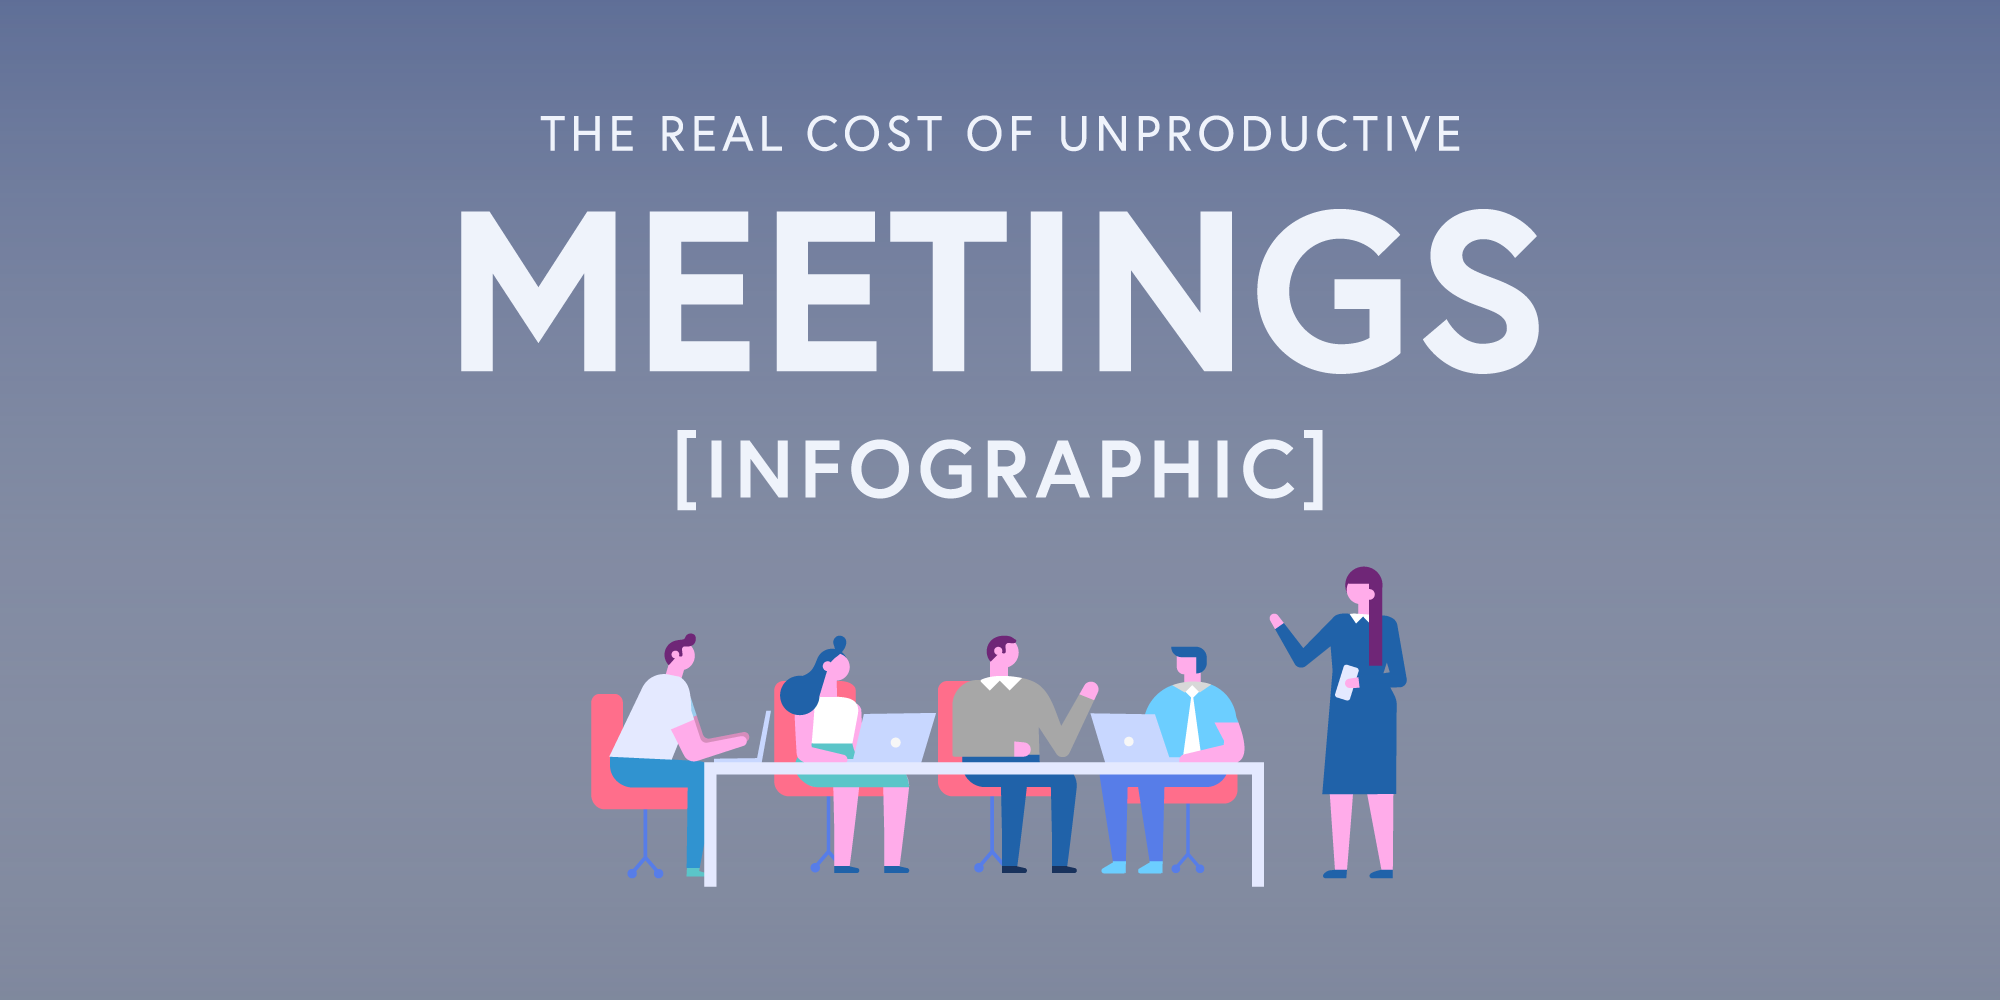 The real cost of unproductive meetings